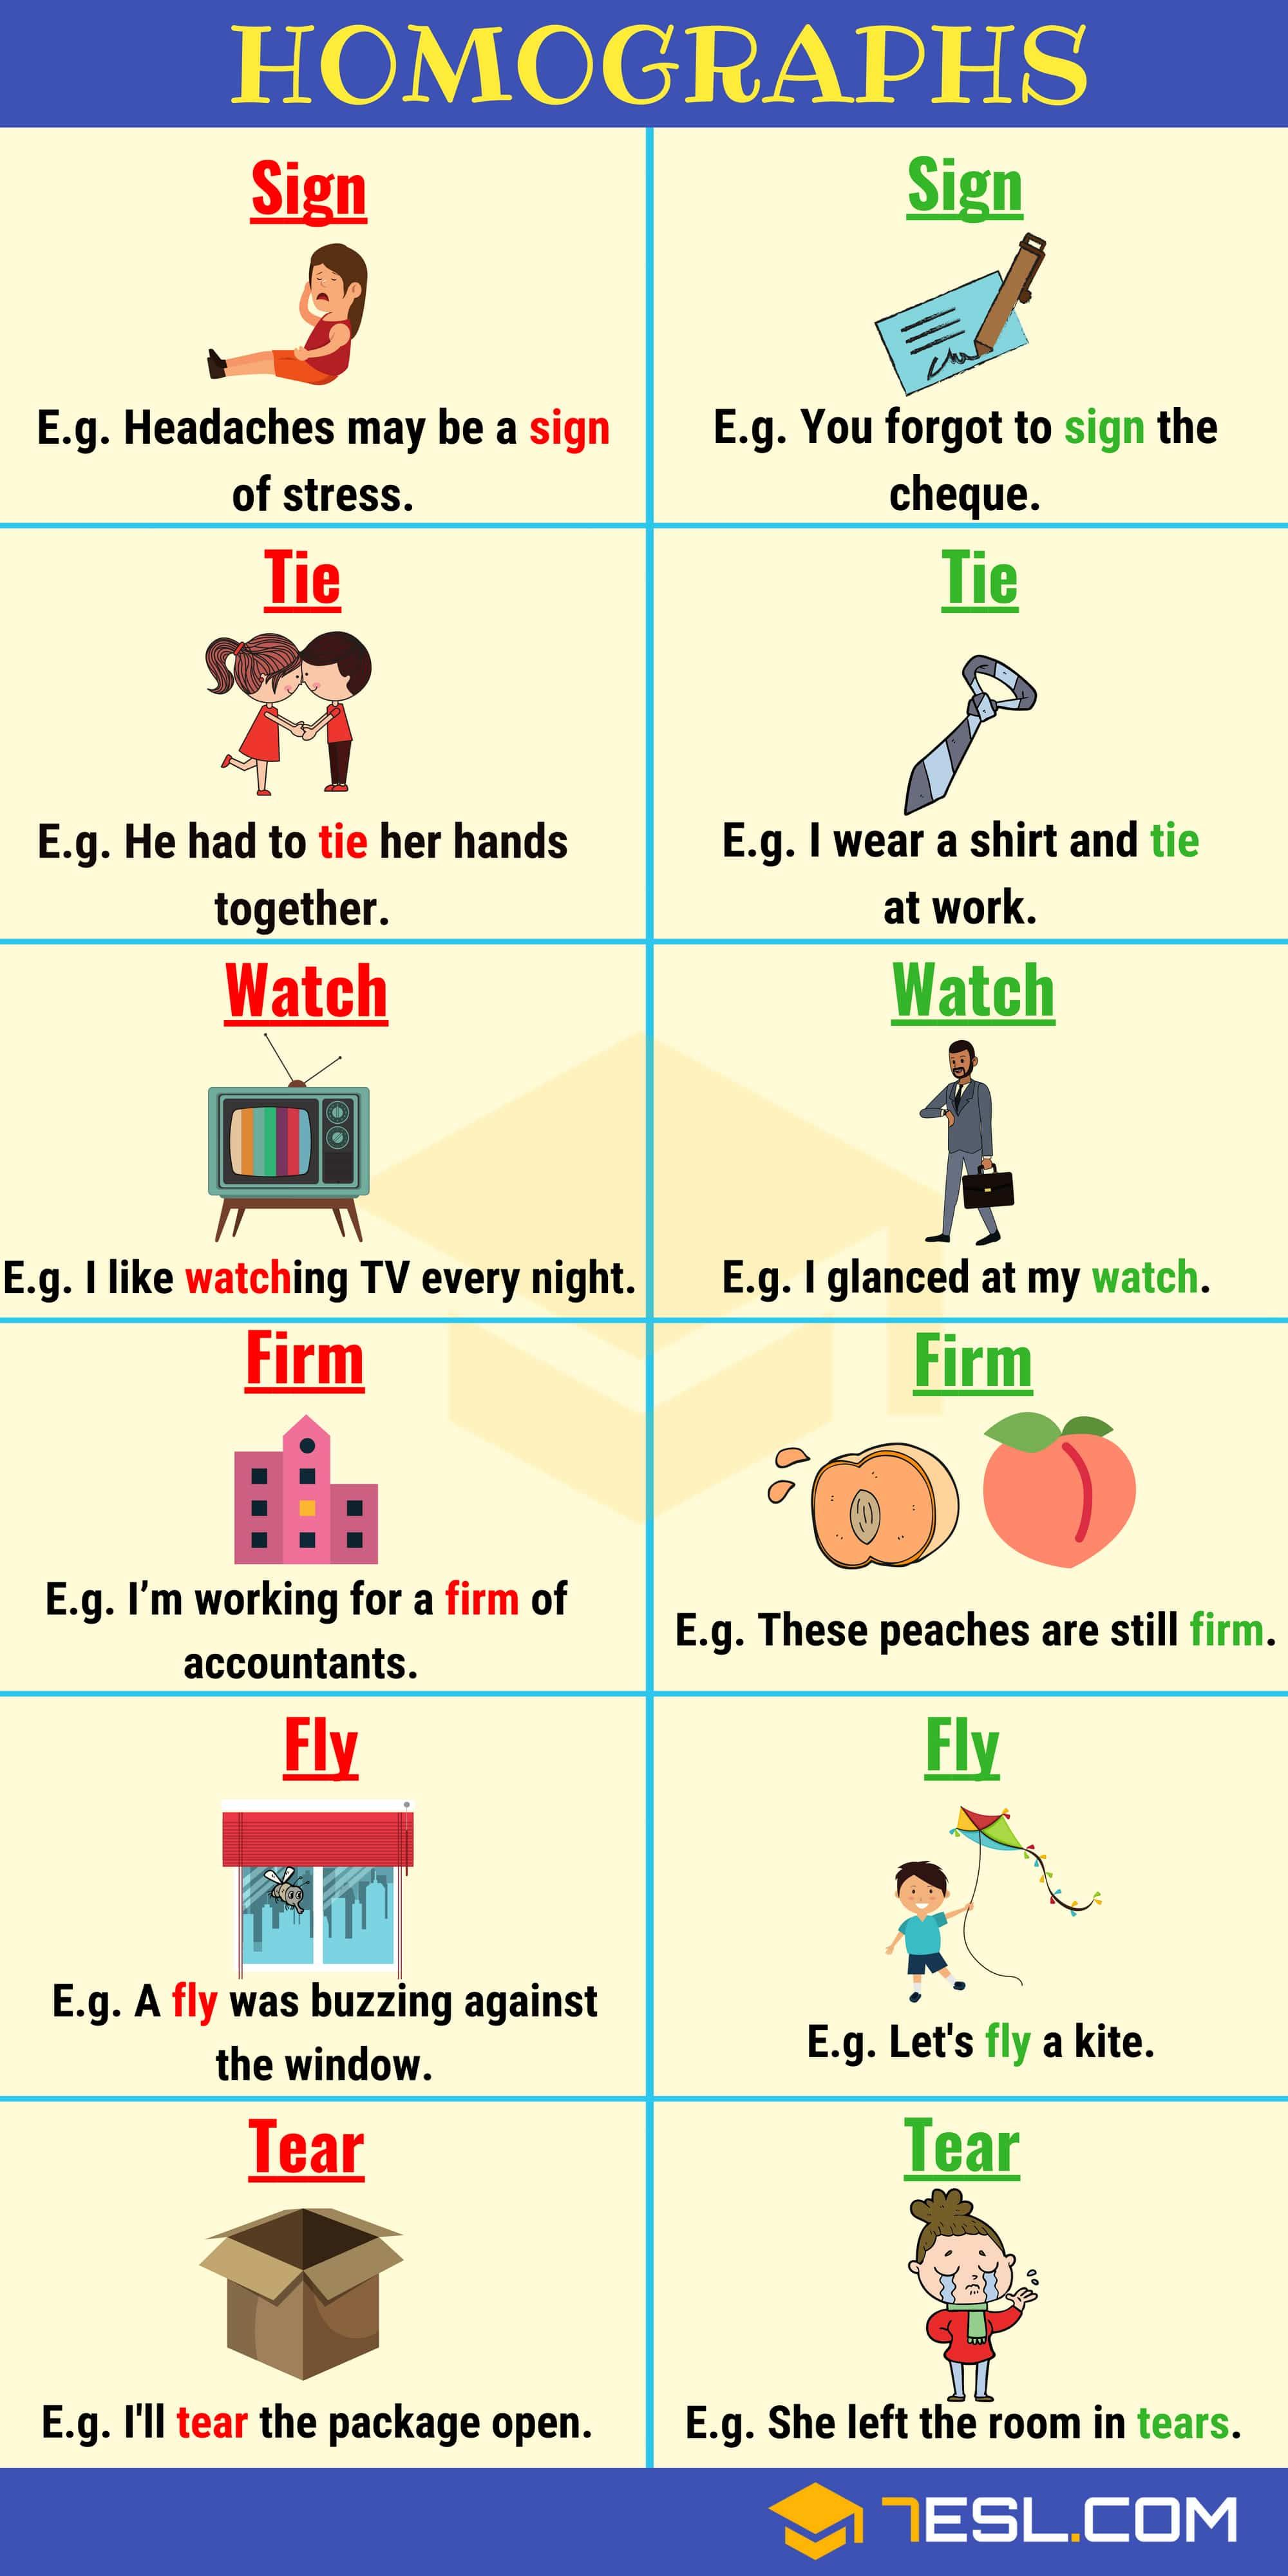 List Of 150 Common Homographs In English With Examples